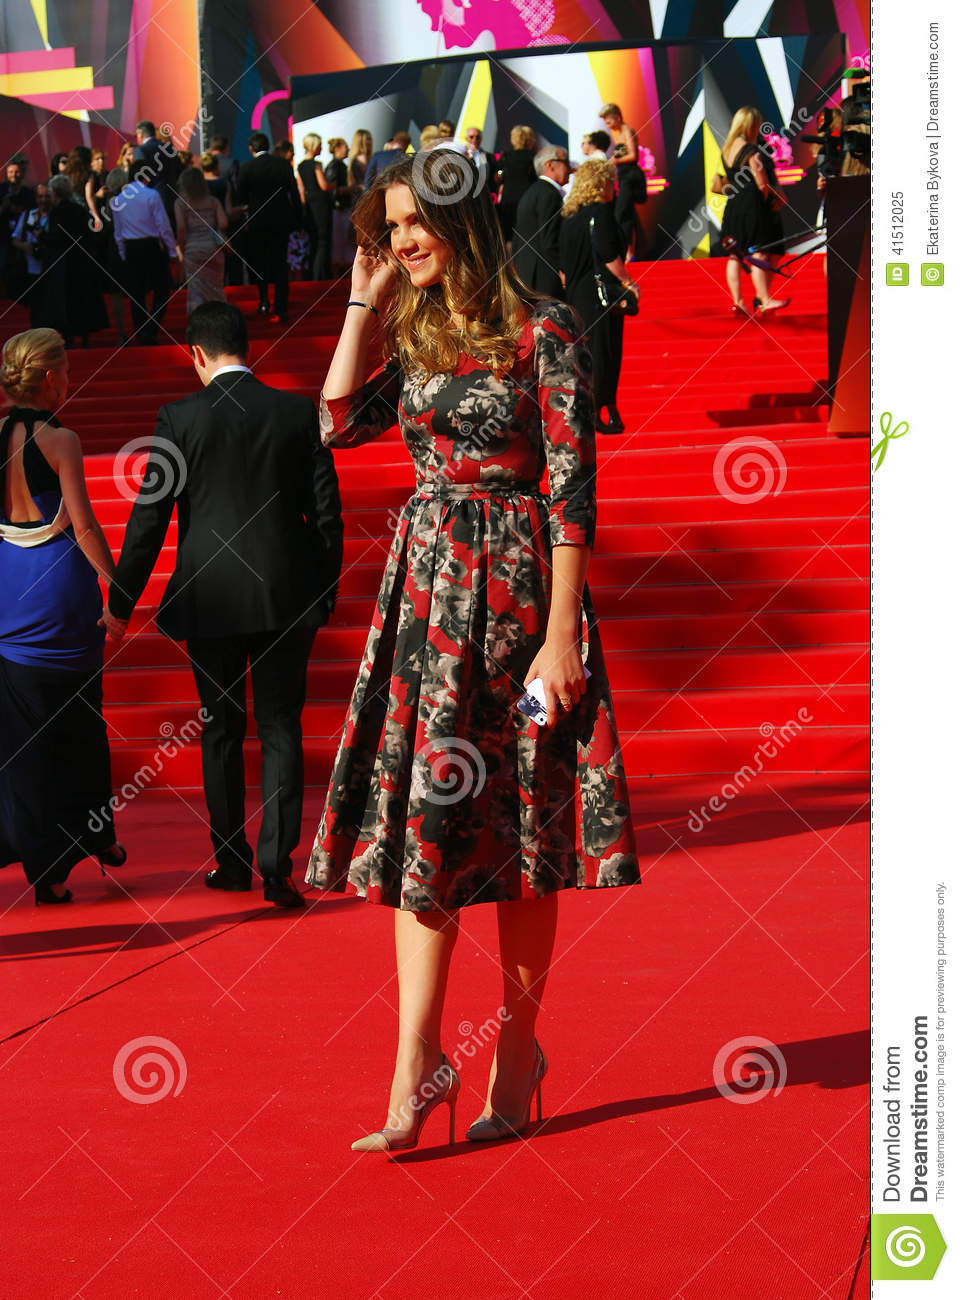 Kira Plastinina At Moscow Film Festival Editorial Image Image Of Famous Fashion 41512025